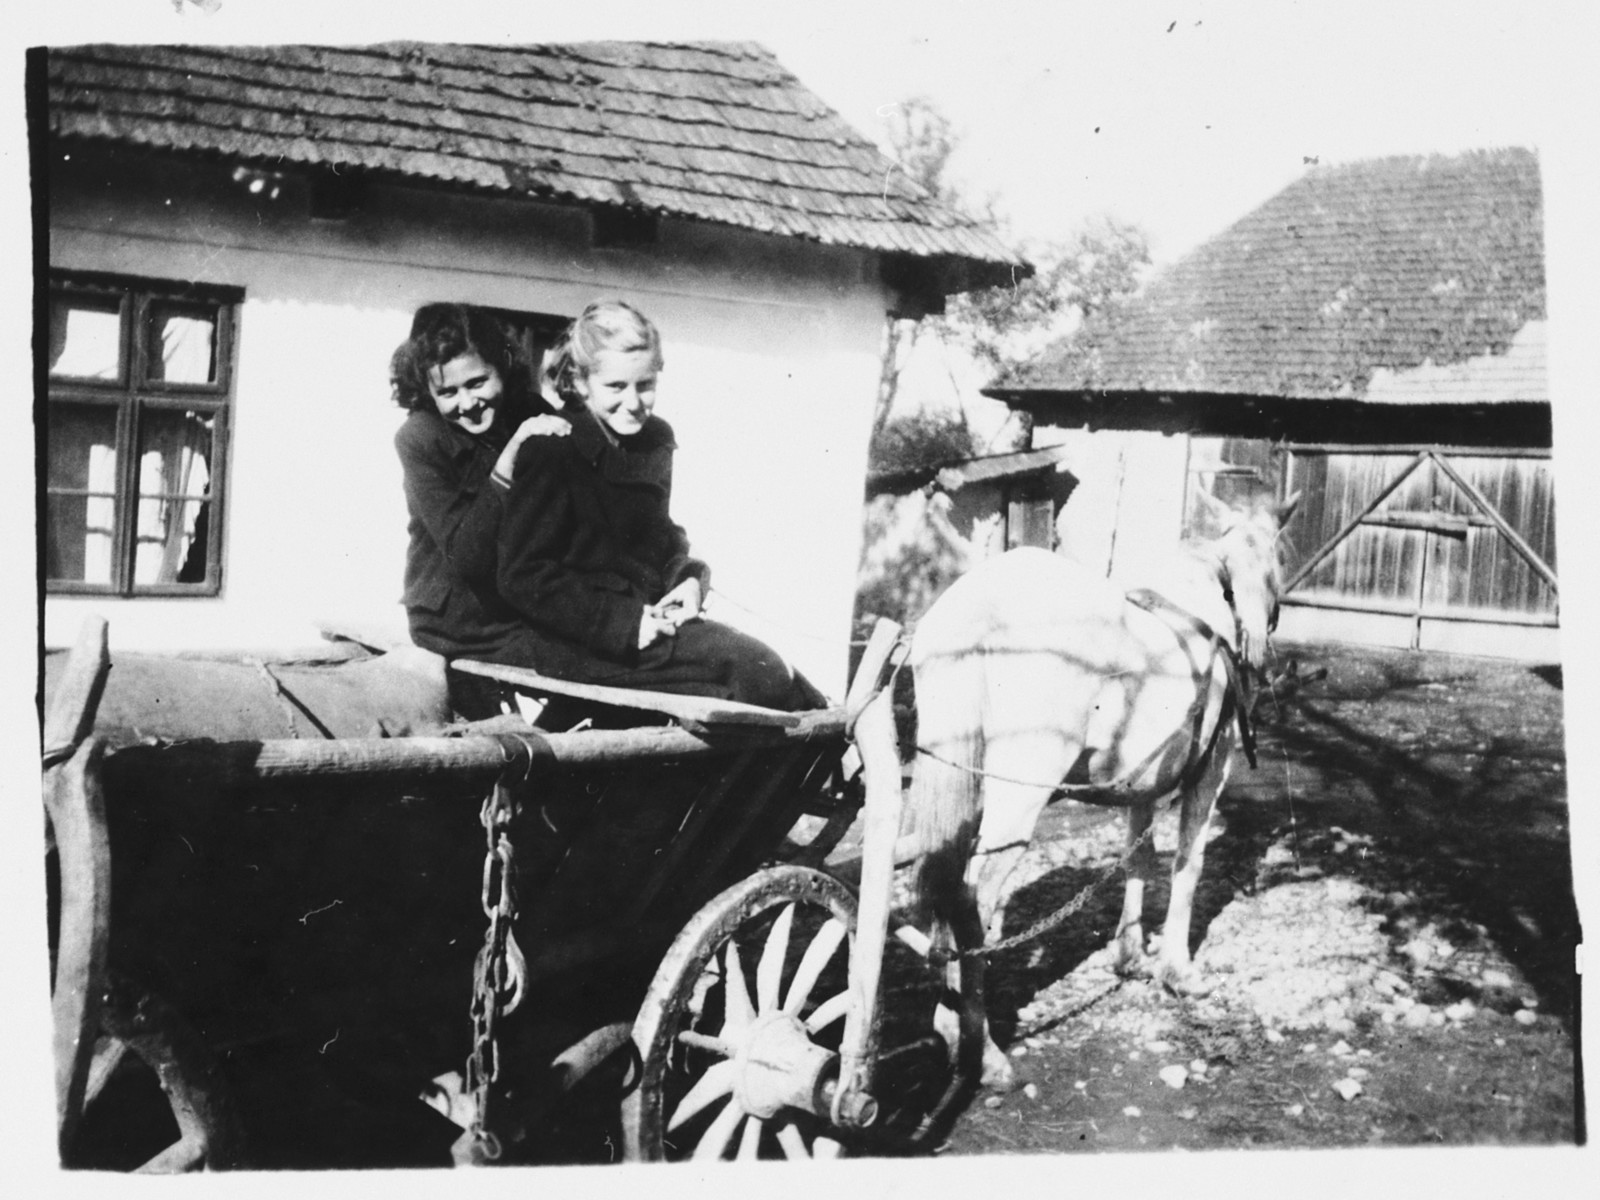 Two Jewish teenagers pose in a horse-drawn wagon in Bilki.  Pictured are Magdalena Mermelstein (left) with her friend, Alice Steinberger (right), outside Magdalena's grandparents' home.